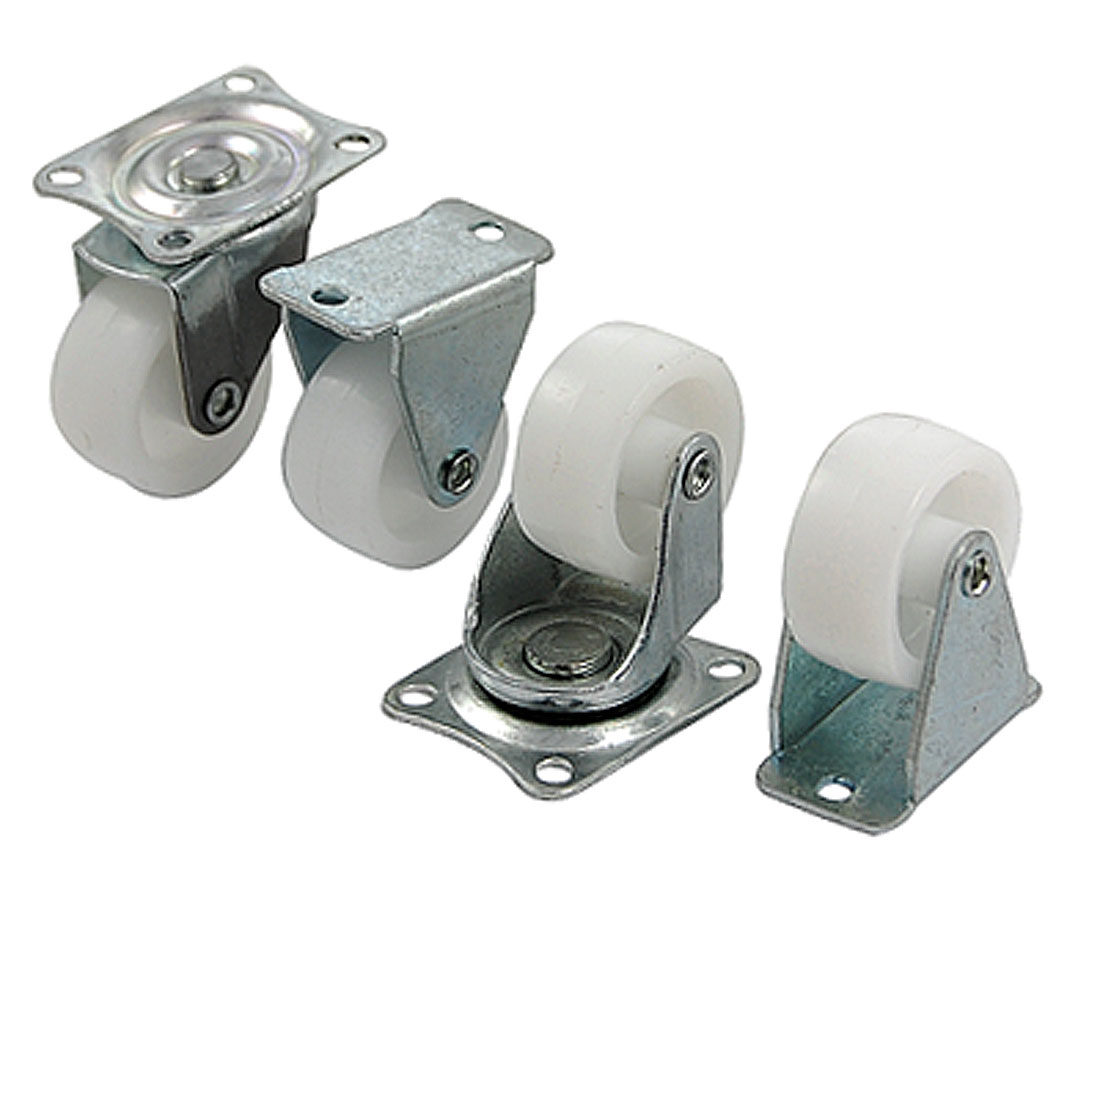 "4 Pieces 1.2"" Rectangle Top Plate Plastic Tire Casters"